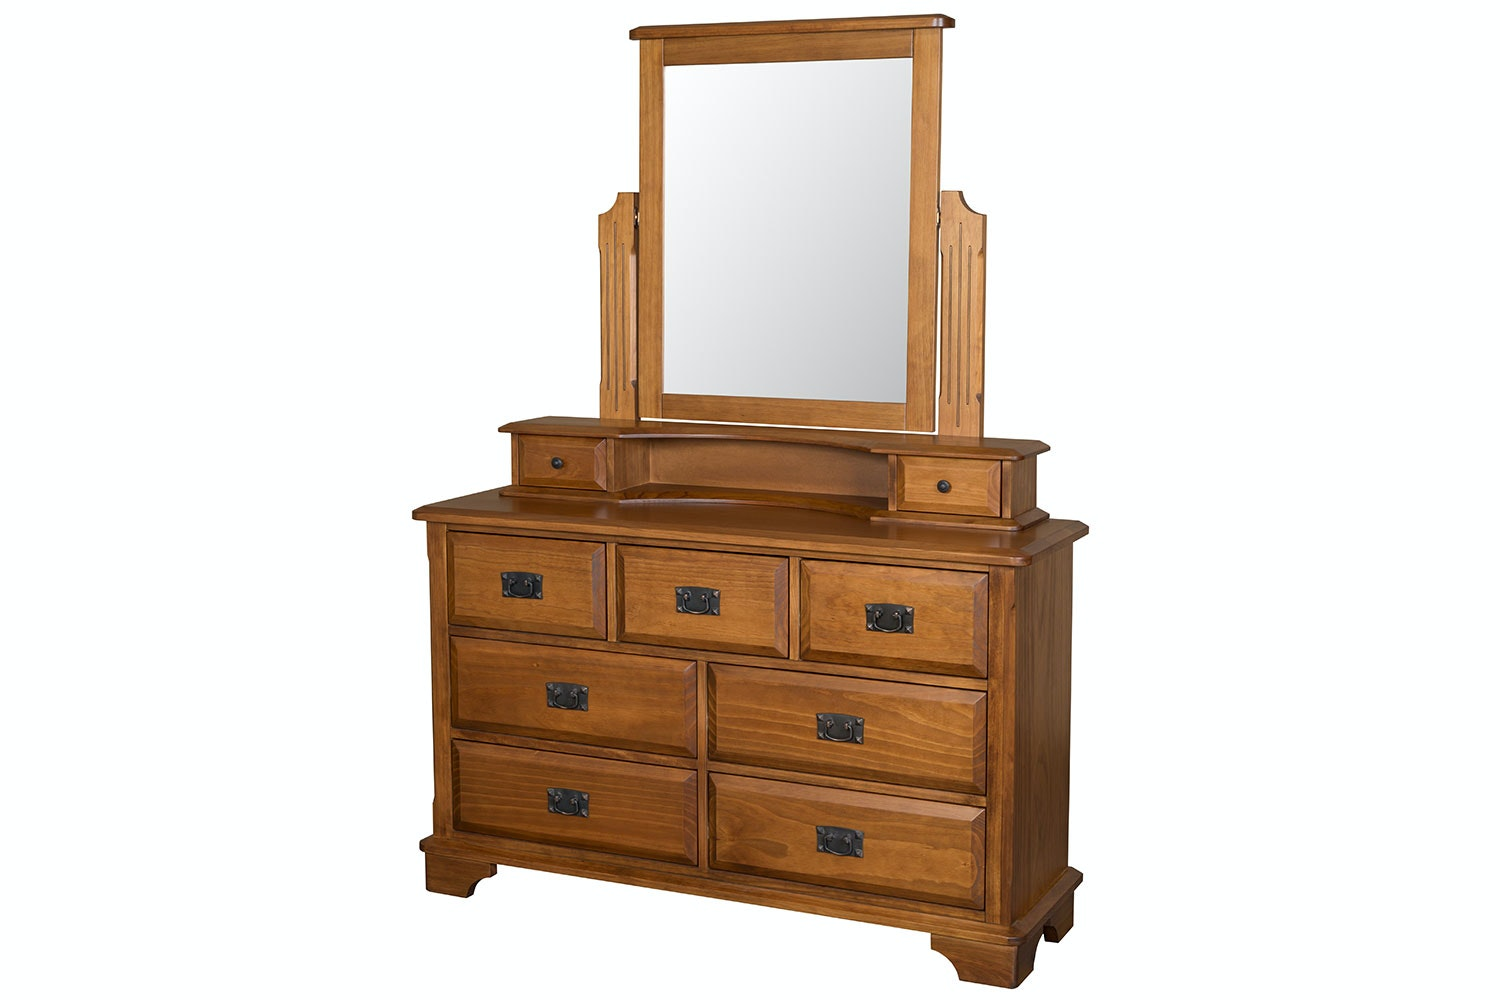 Maison 9 Drawer Dresser with Mirror by Coastwood Furniture